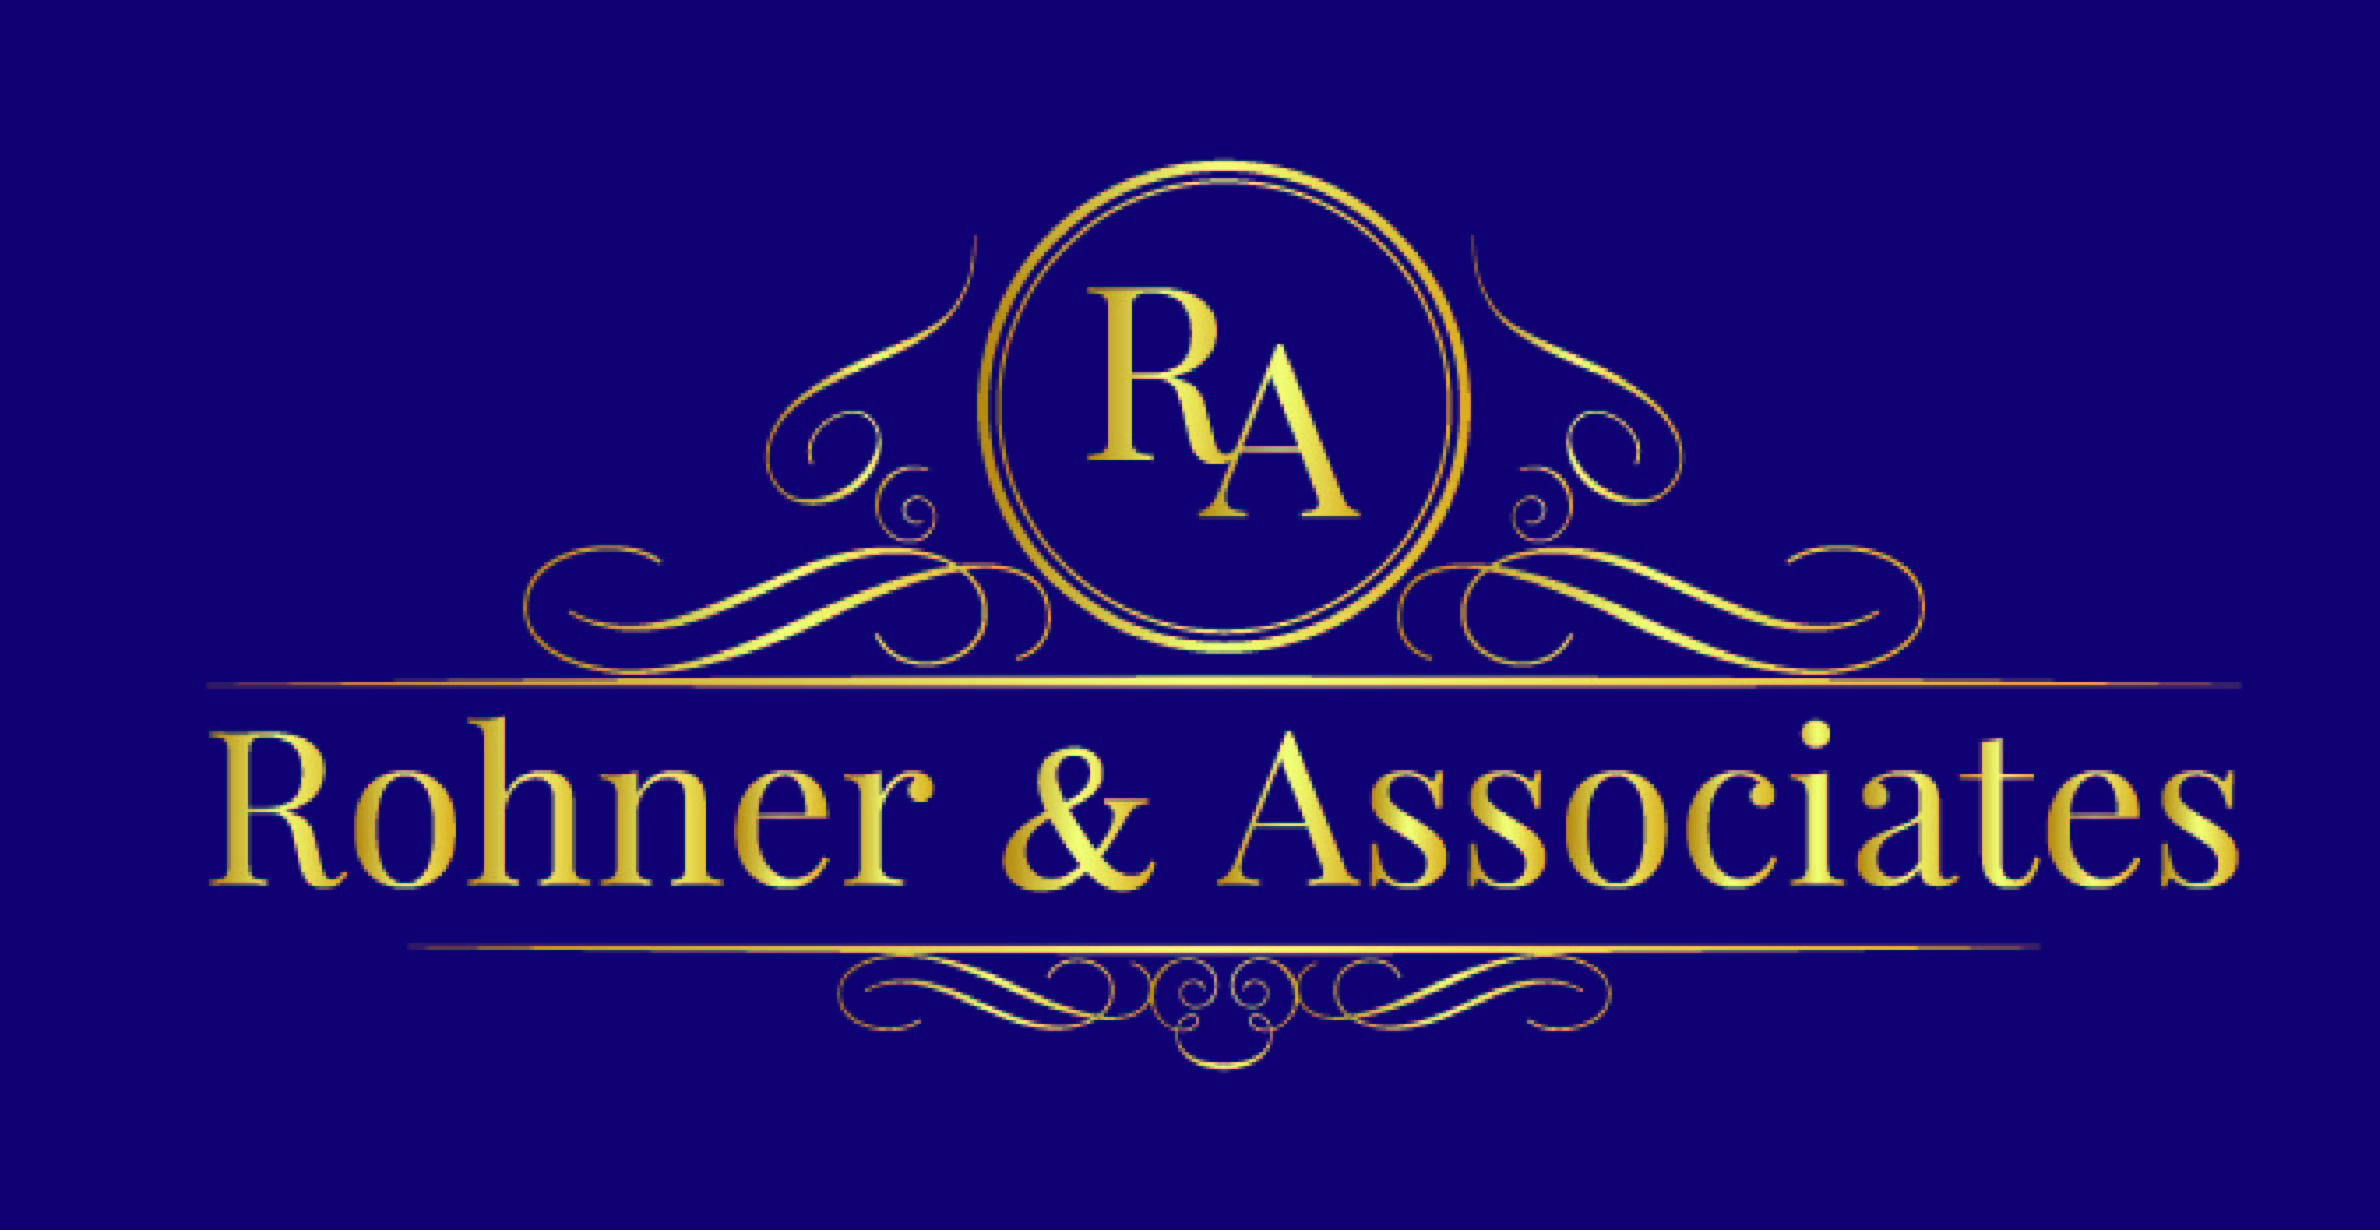 Crystal Lake, IL Accounting and Consulting Firm | Estate Planning Page | Rohner & Associates Inc. a division of Amethyst Investment Partners